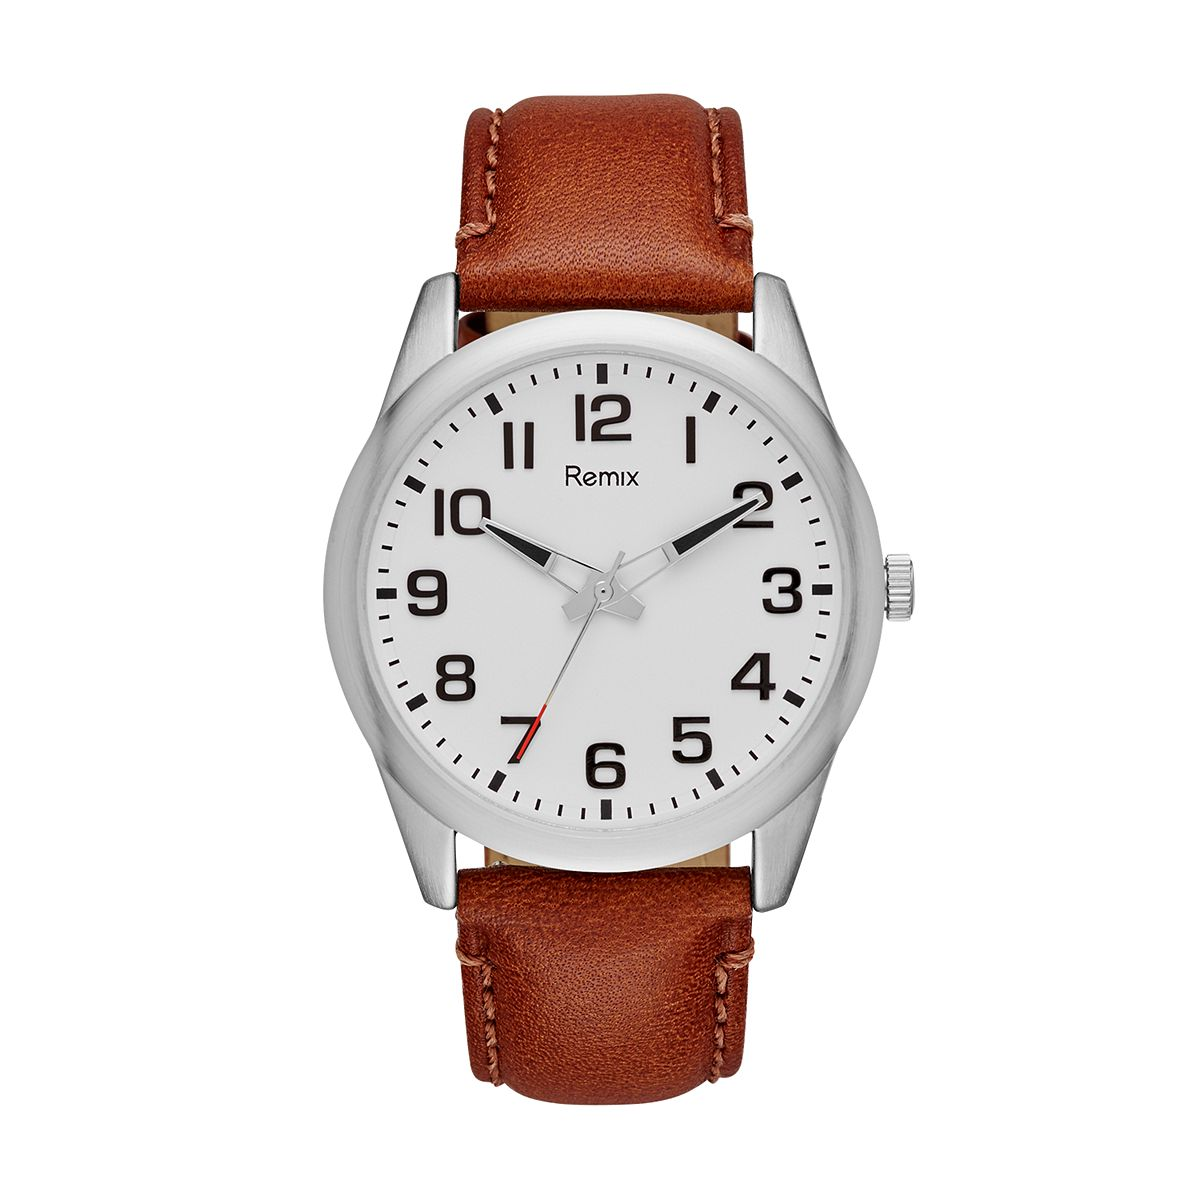 Brown Leather Strap Watch / Promotional product fully customized